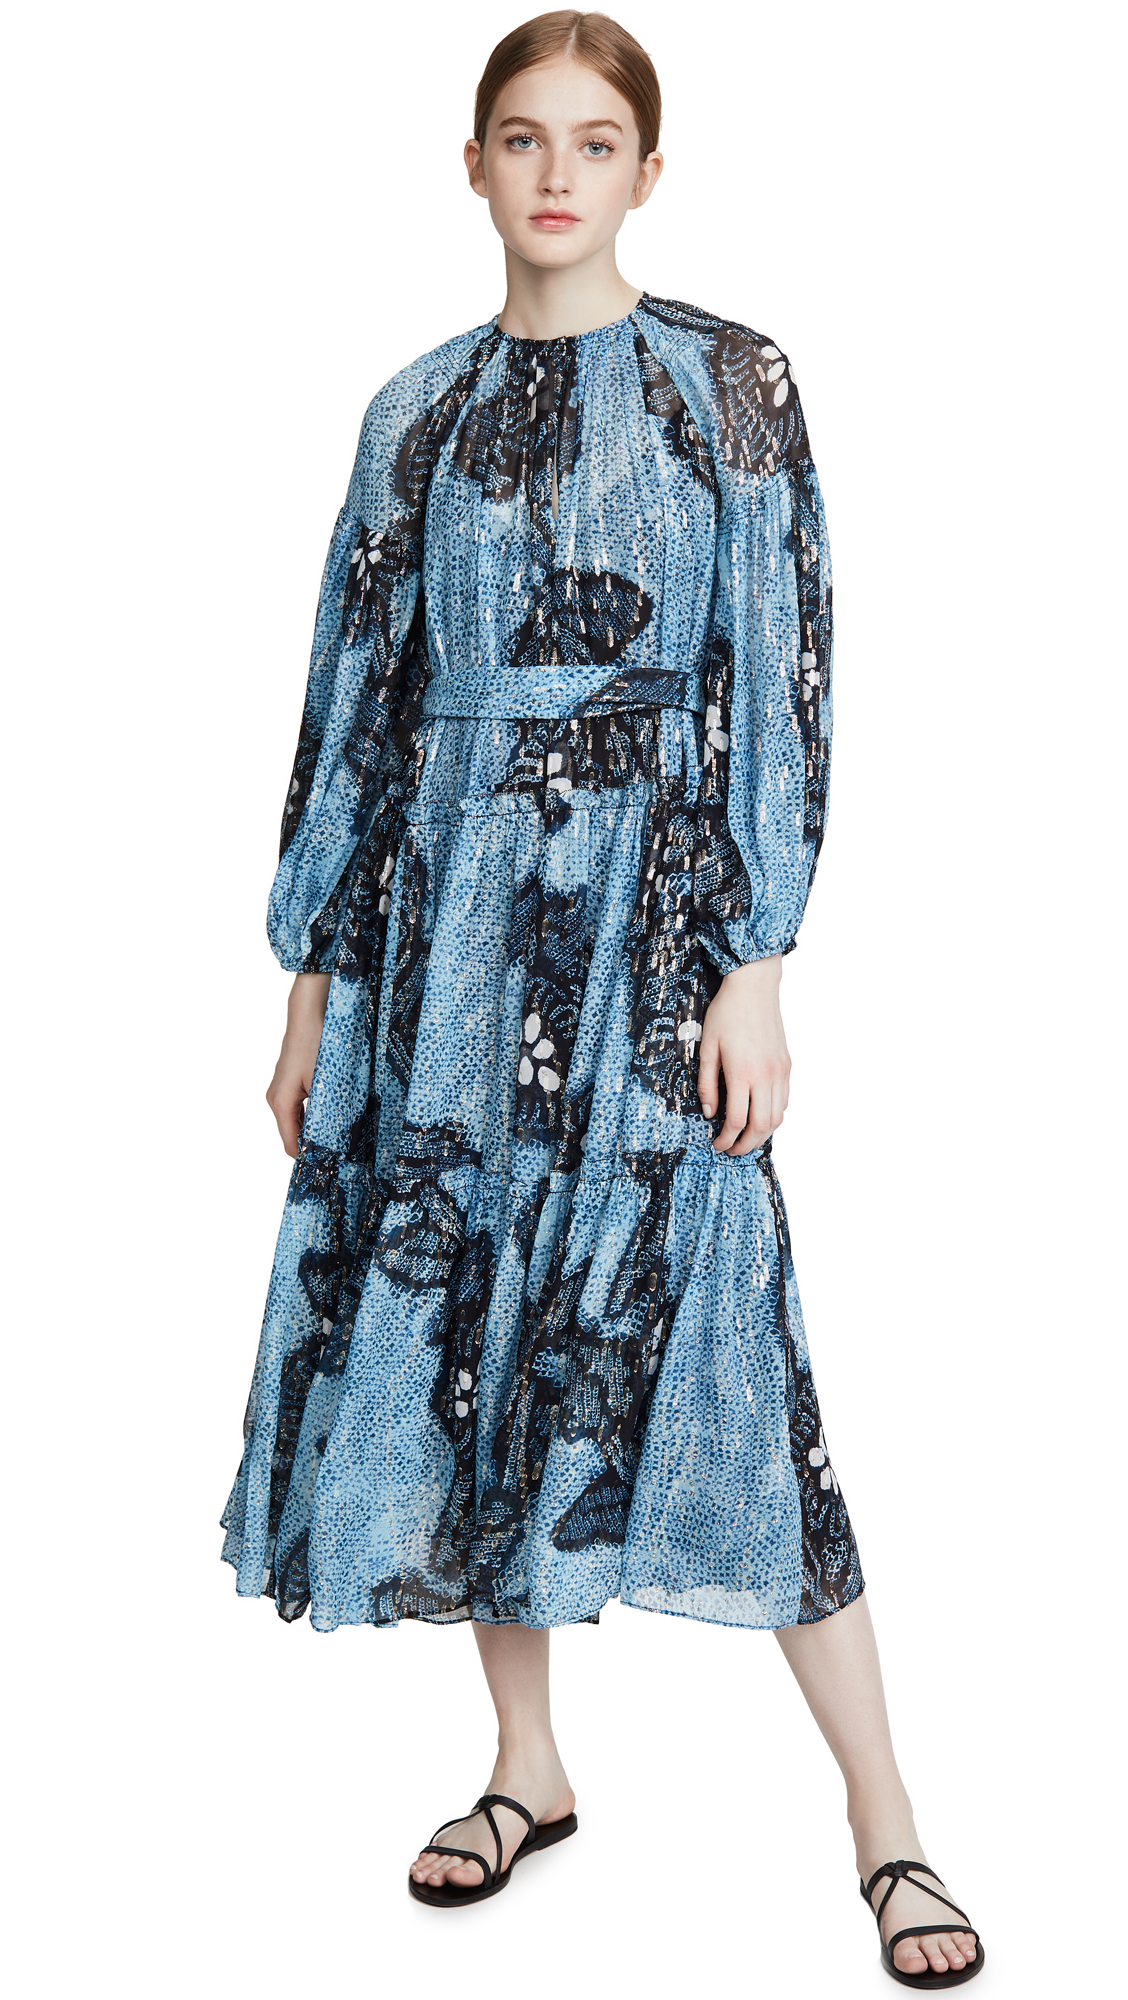 Ulla Johnson Indra Dress - 30% Off Sale